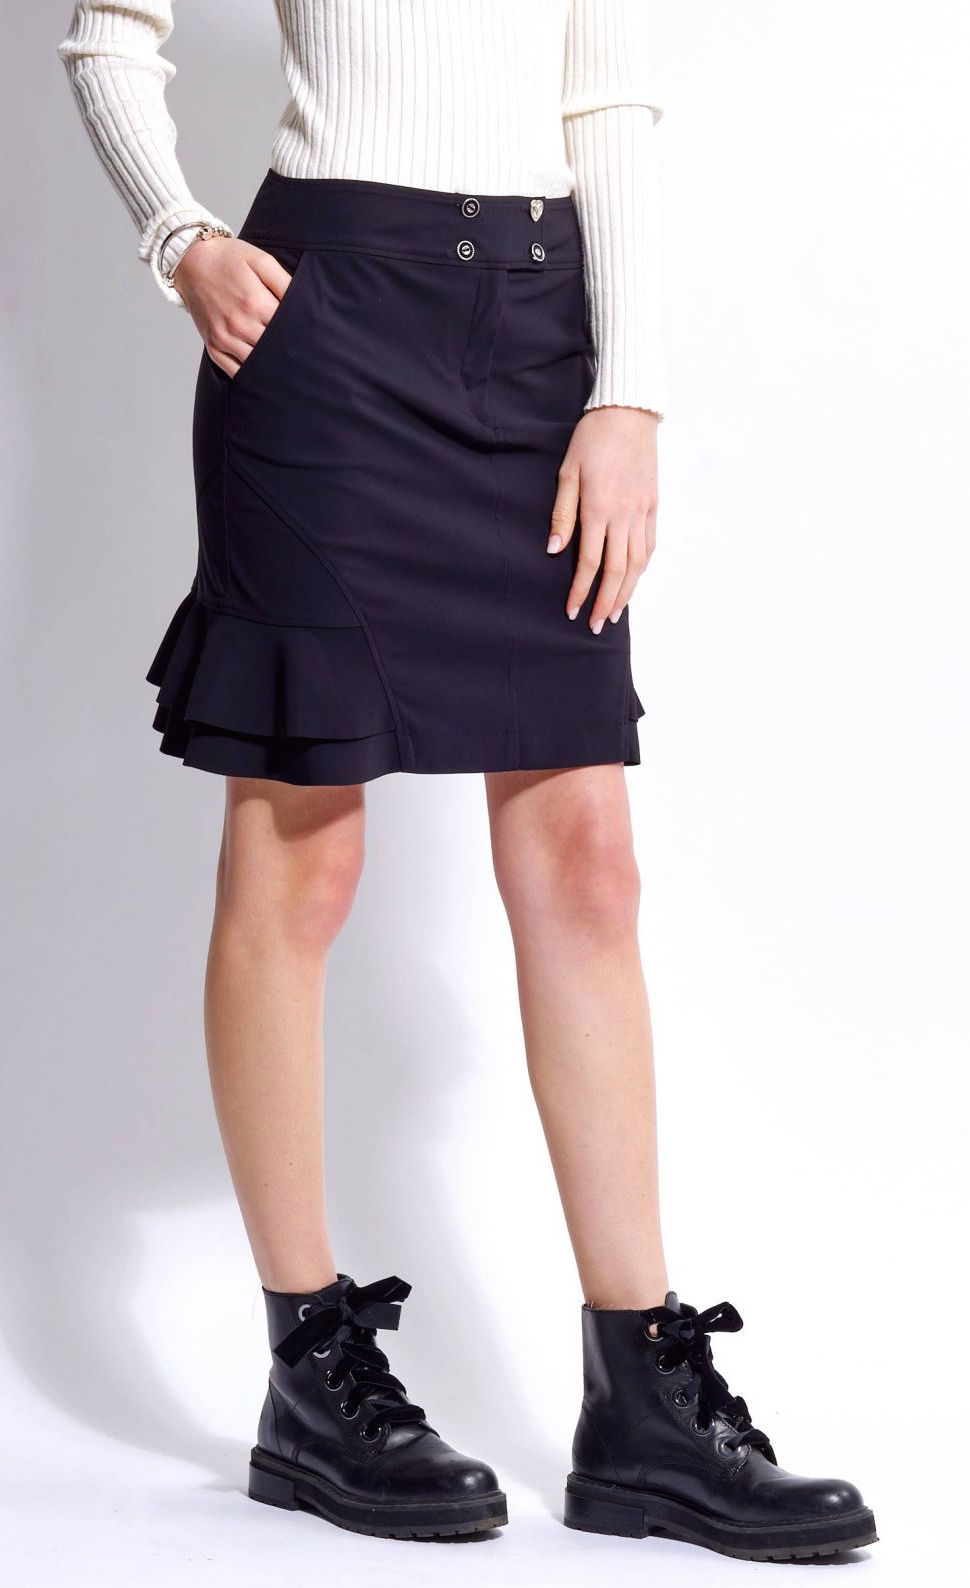 Right-sided front view of the bottom half of a woman wearing the mid-length indies cosmic black trumpet skirt with her hand in the side pocket and side ruffles showing at the bottom.